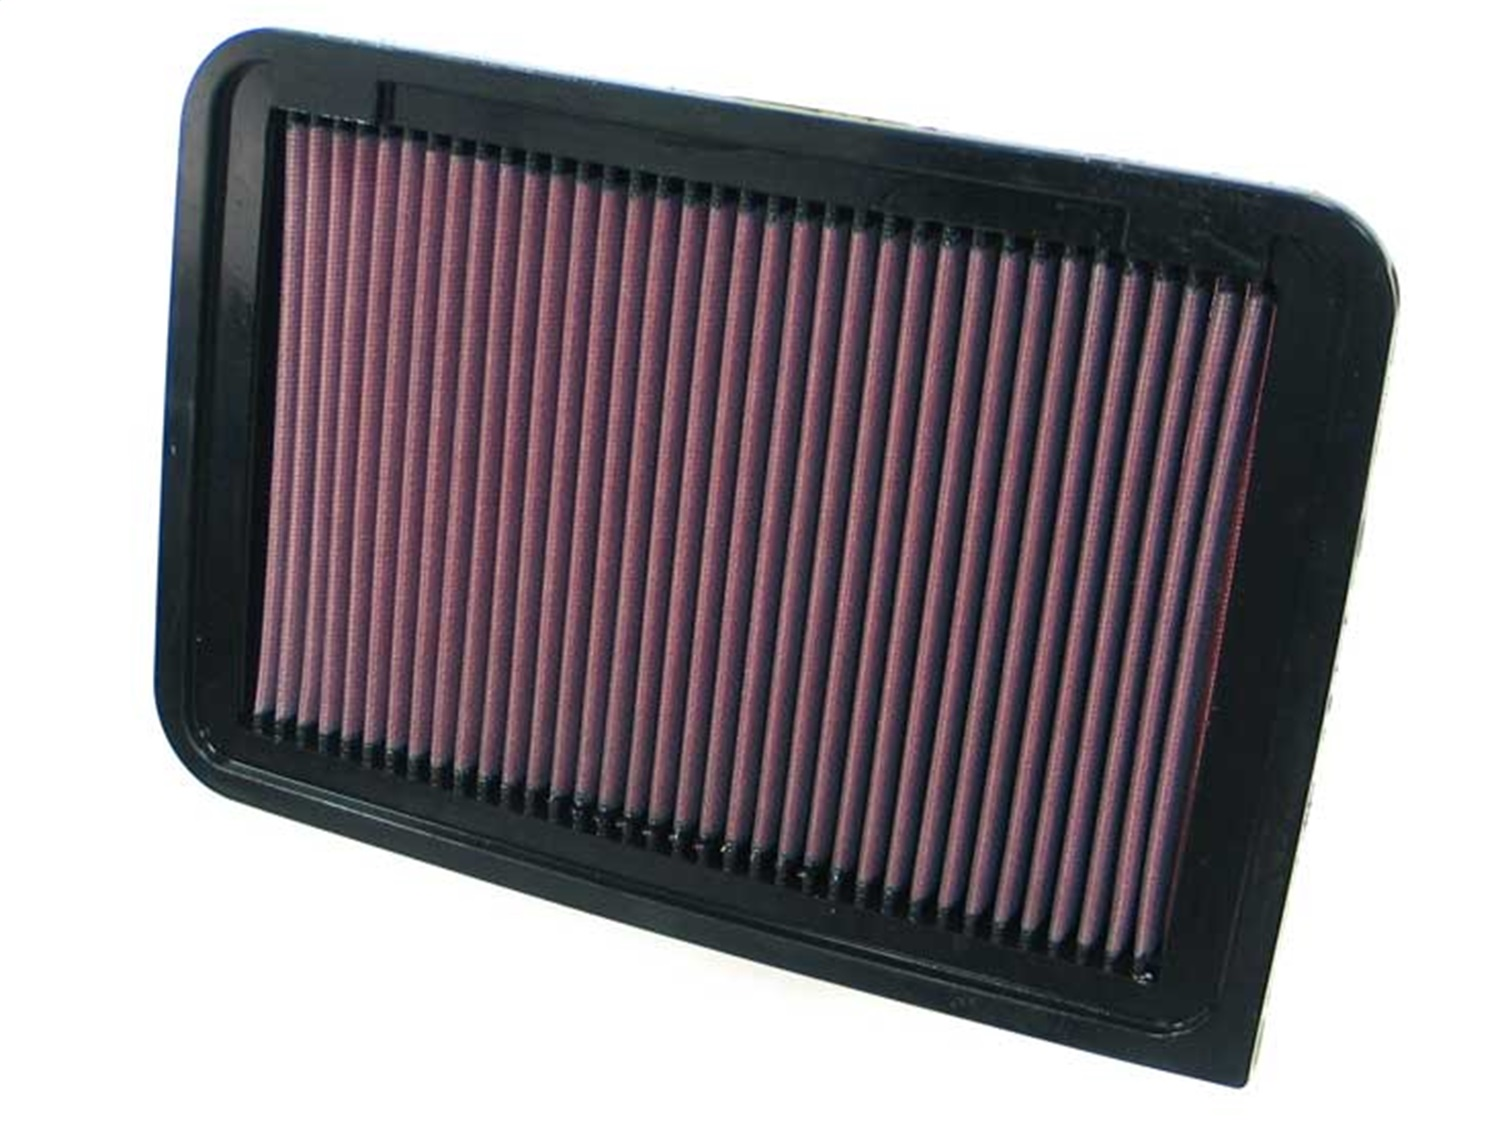 K&N Filters 33-2370 Air Filter Fits 07-15 Camry Venza 33-2370